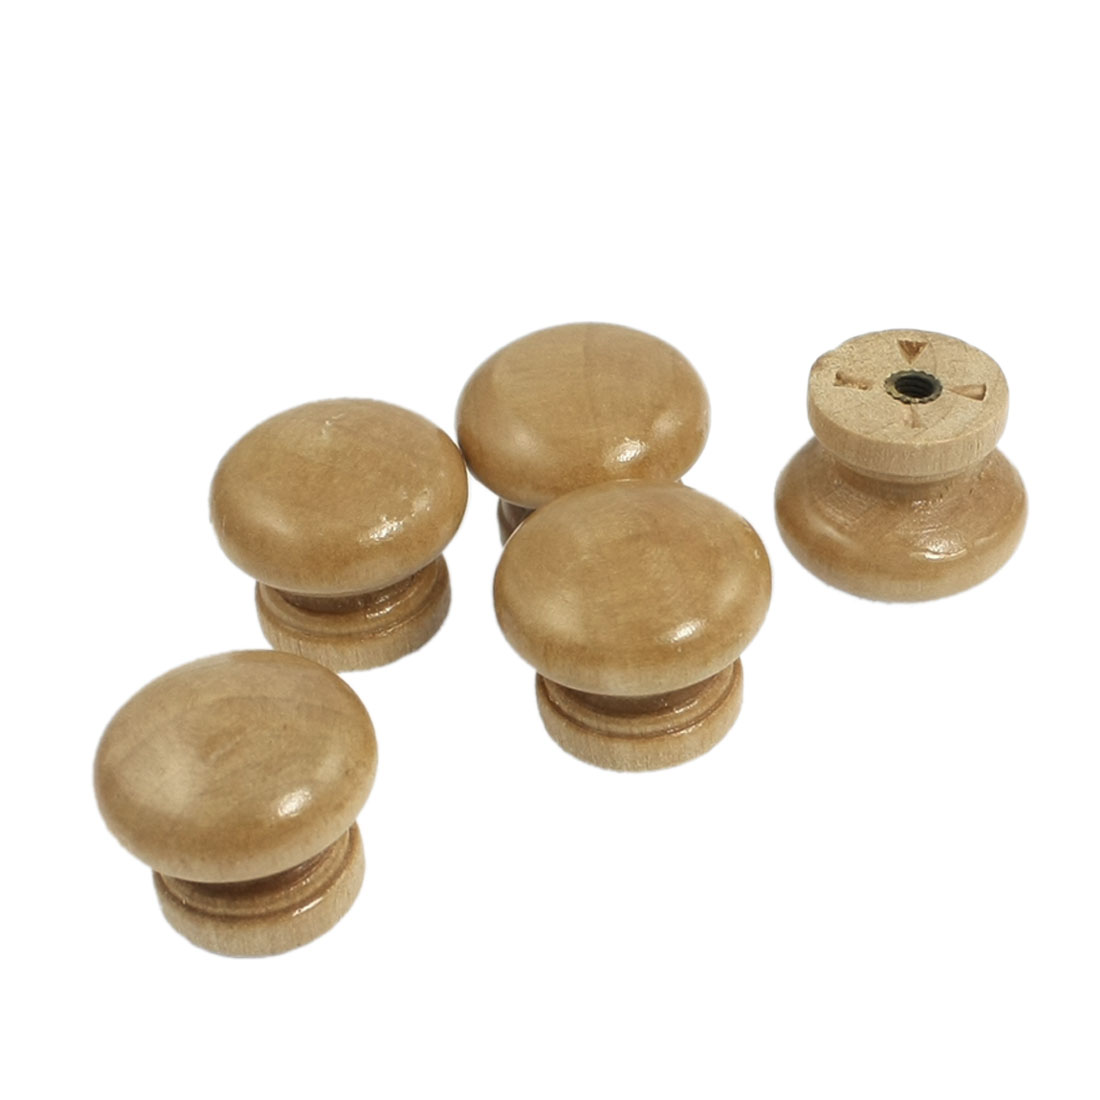 "5 Pcs Cabinet Wood Wooden 0.94"" Dia Round Pull Knob Handles Beige"